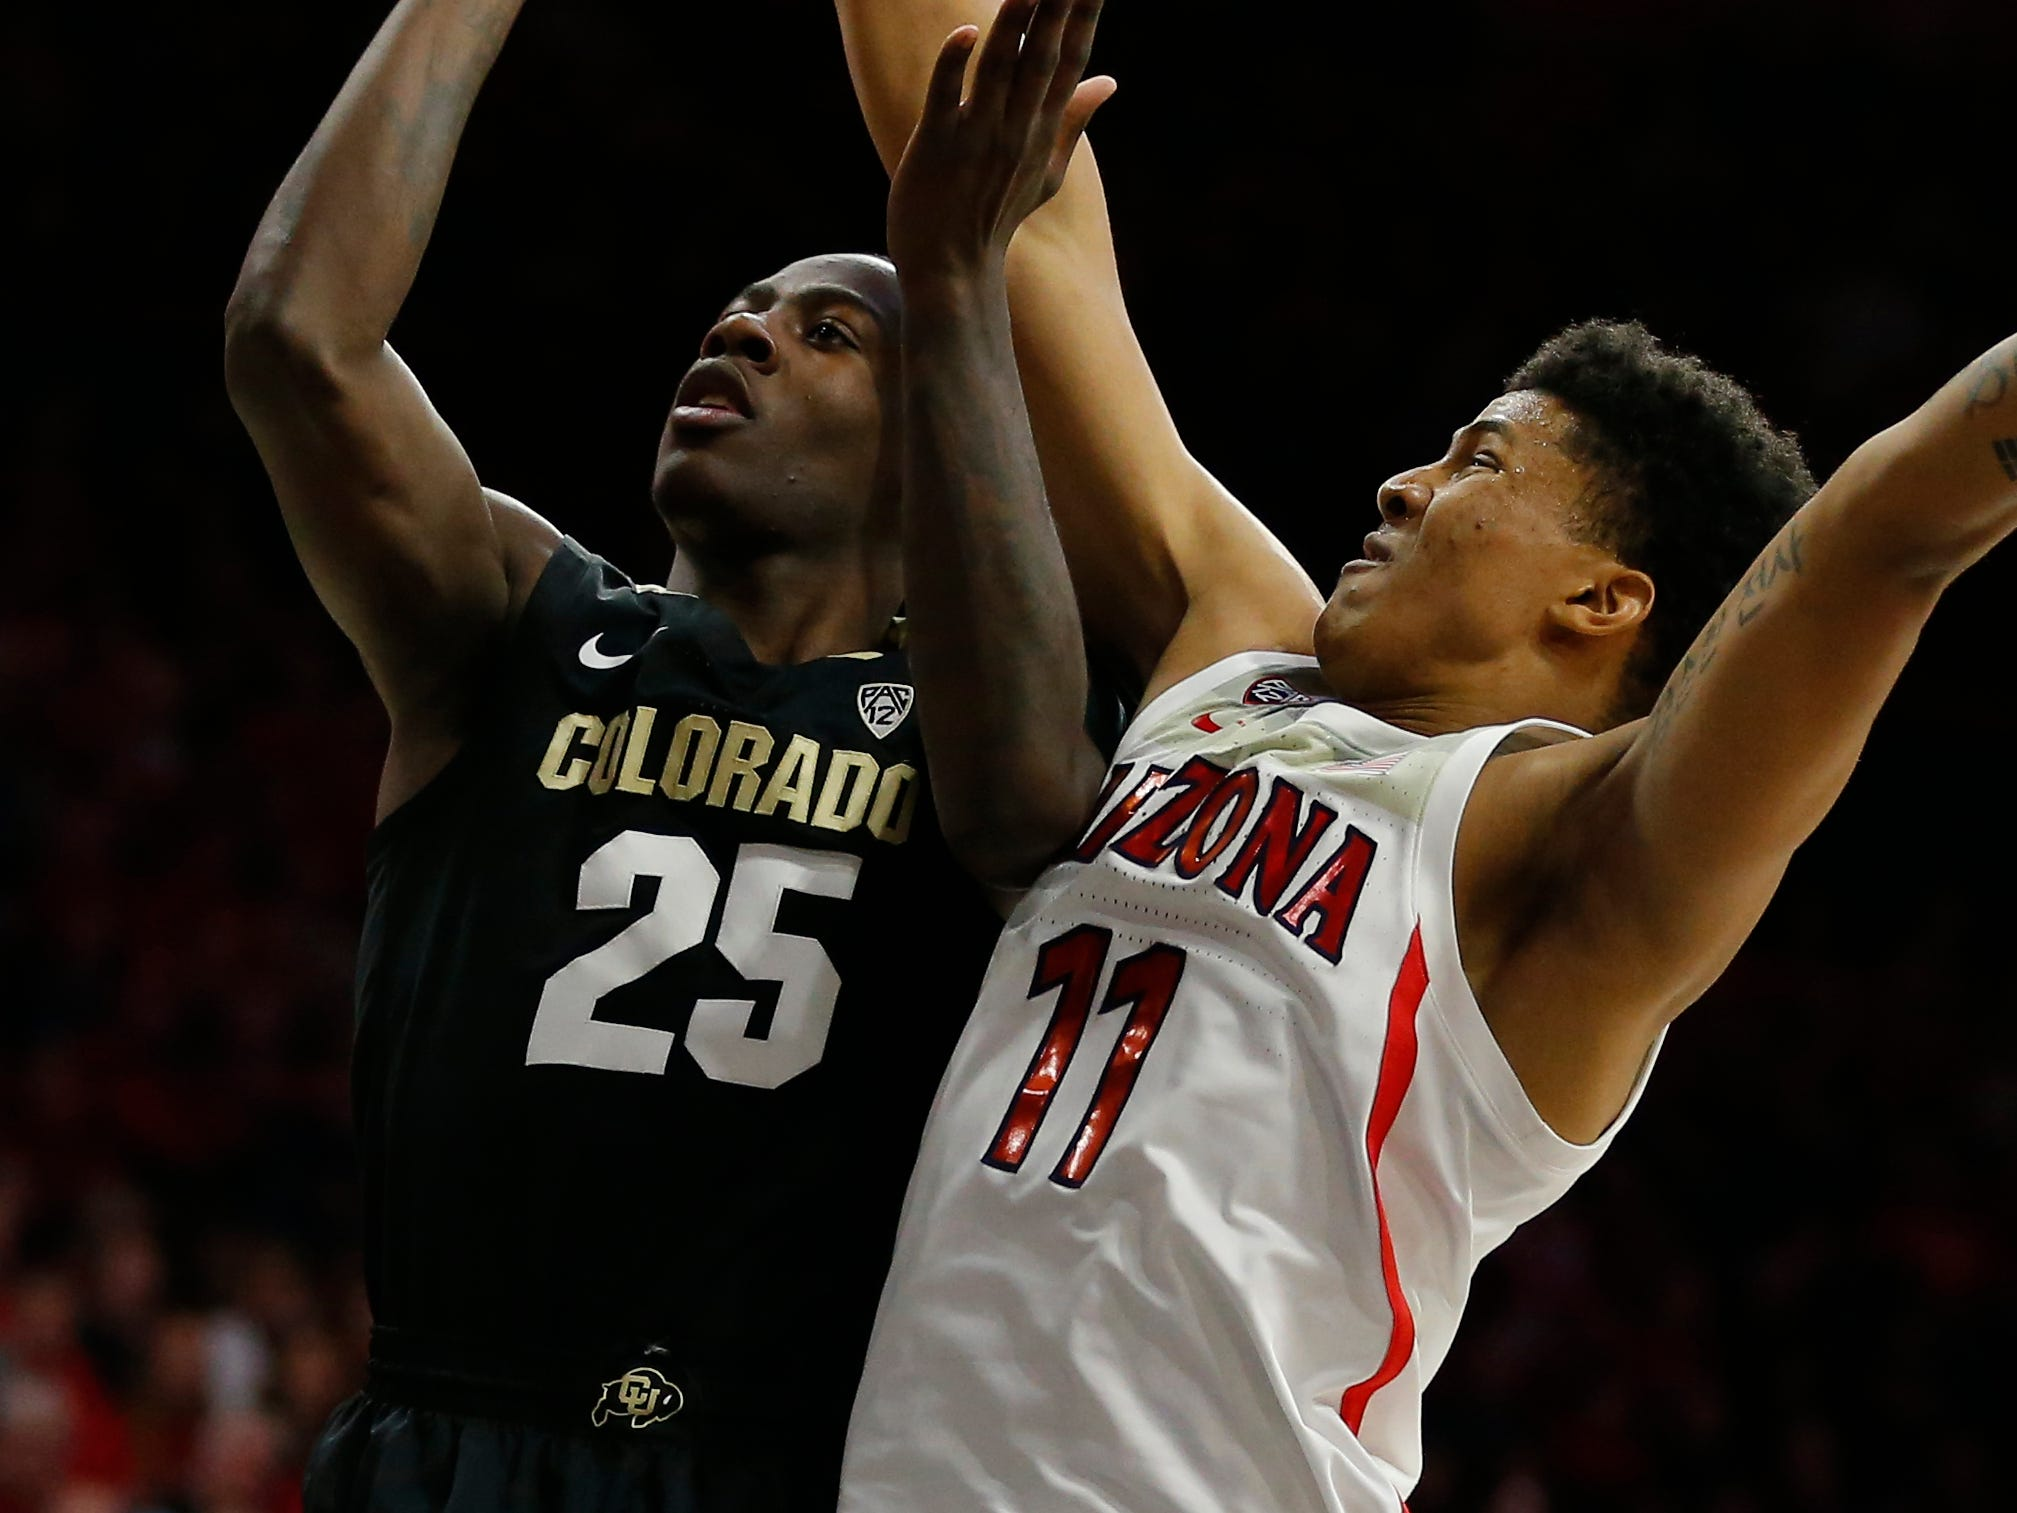 Arizona forward Ira Lee (11) blocks the shot of Colorado guard McKinley Wright IV in the first half during an NCAA college basketball game, Thursday, Jan. 3, 2019, in Tucson, Ariz. (AP Photo/Rick Scuteri)